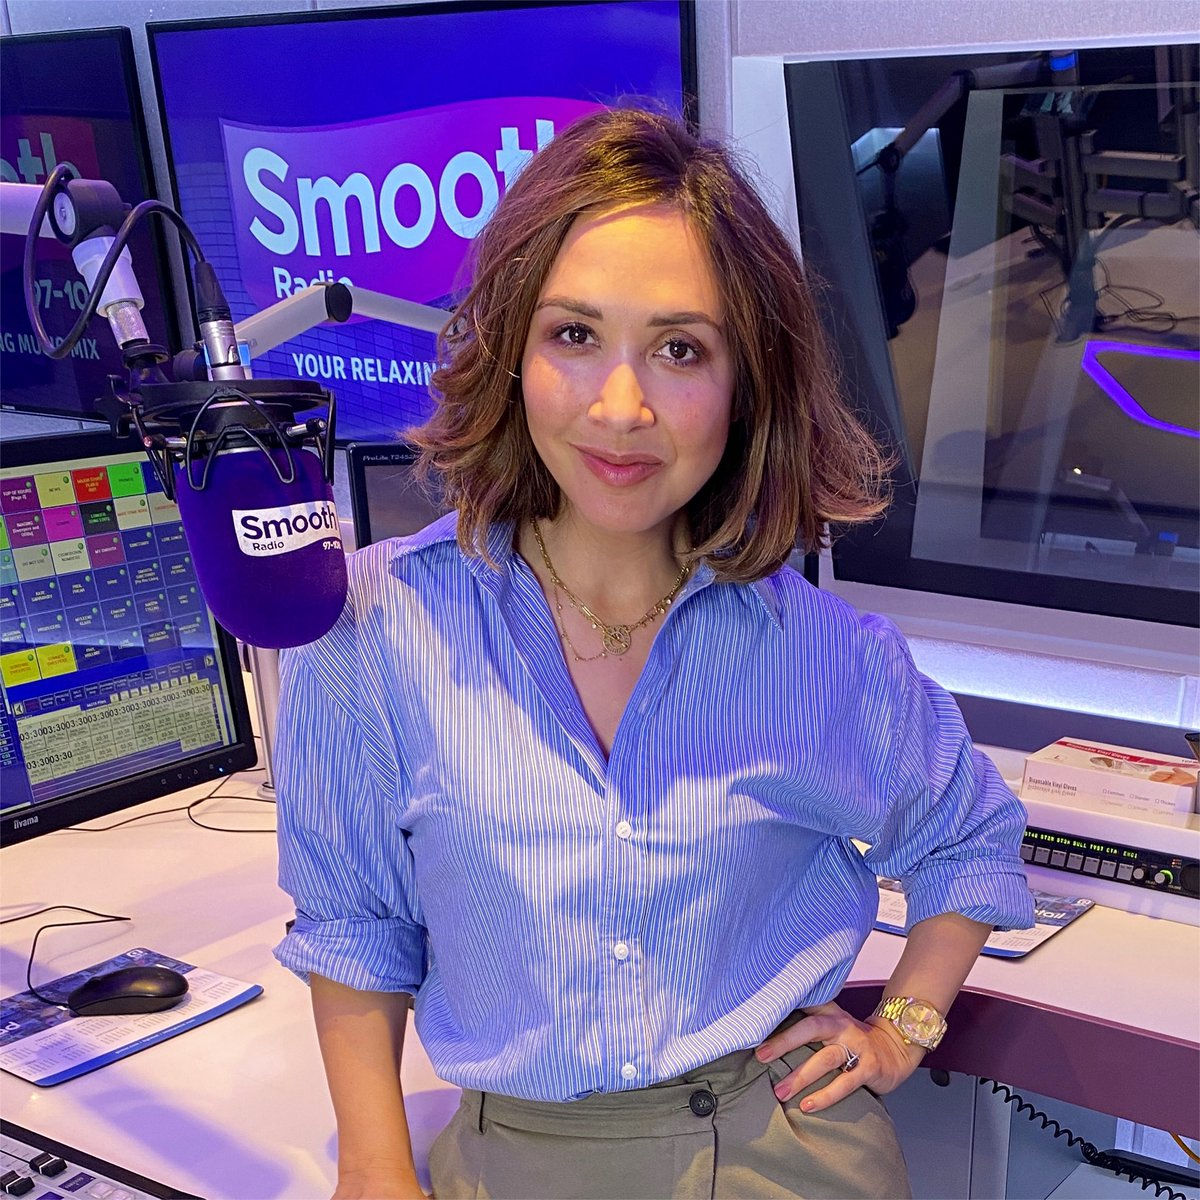 .@KlassMyleene is in the Smooth studio this Monday morning! 👋🎶  She's here to add a little sunshine to your working day, with the most relaxing music in the world. ☺️  📻 Listen now on DAB, online or on @GlobalPlayer! https://t.co/wpsQUqKhSE